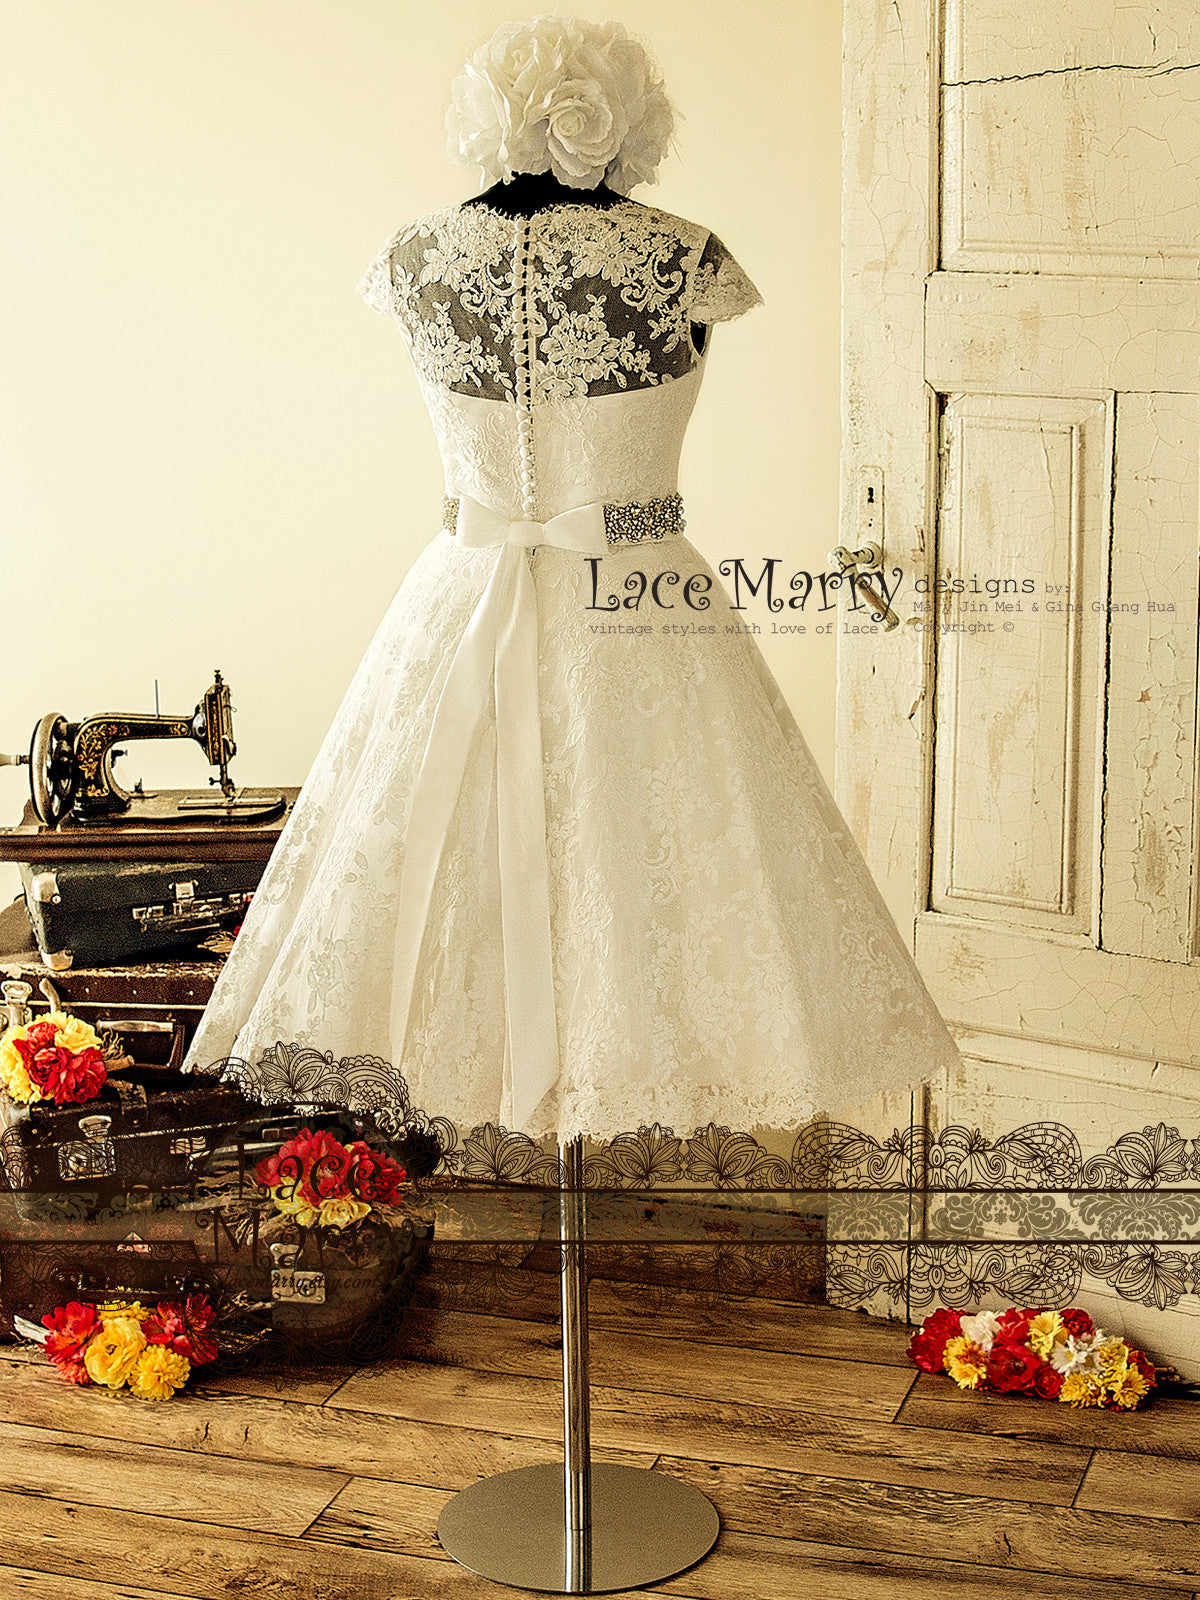 1950s Style Wedding Dress From Alencon Lace In Knee Length With Illusion Neckline Cap Sleeves Buttons Beaded Sash And A Line Petticoat